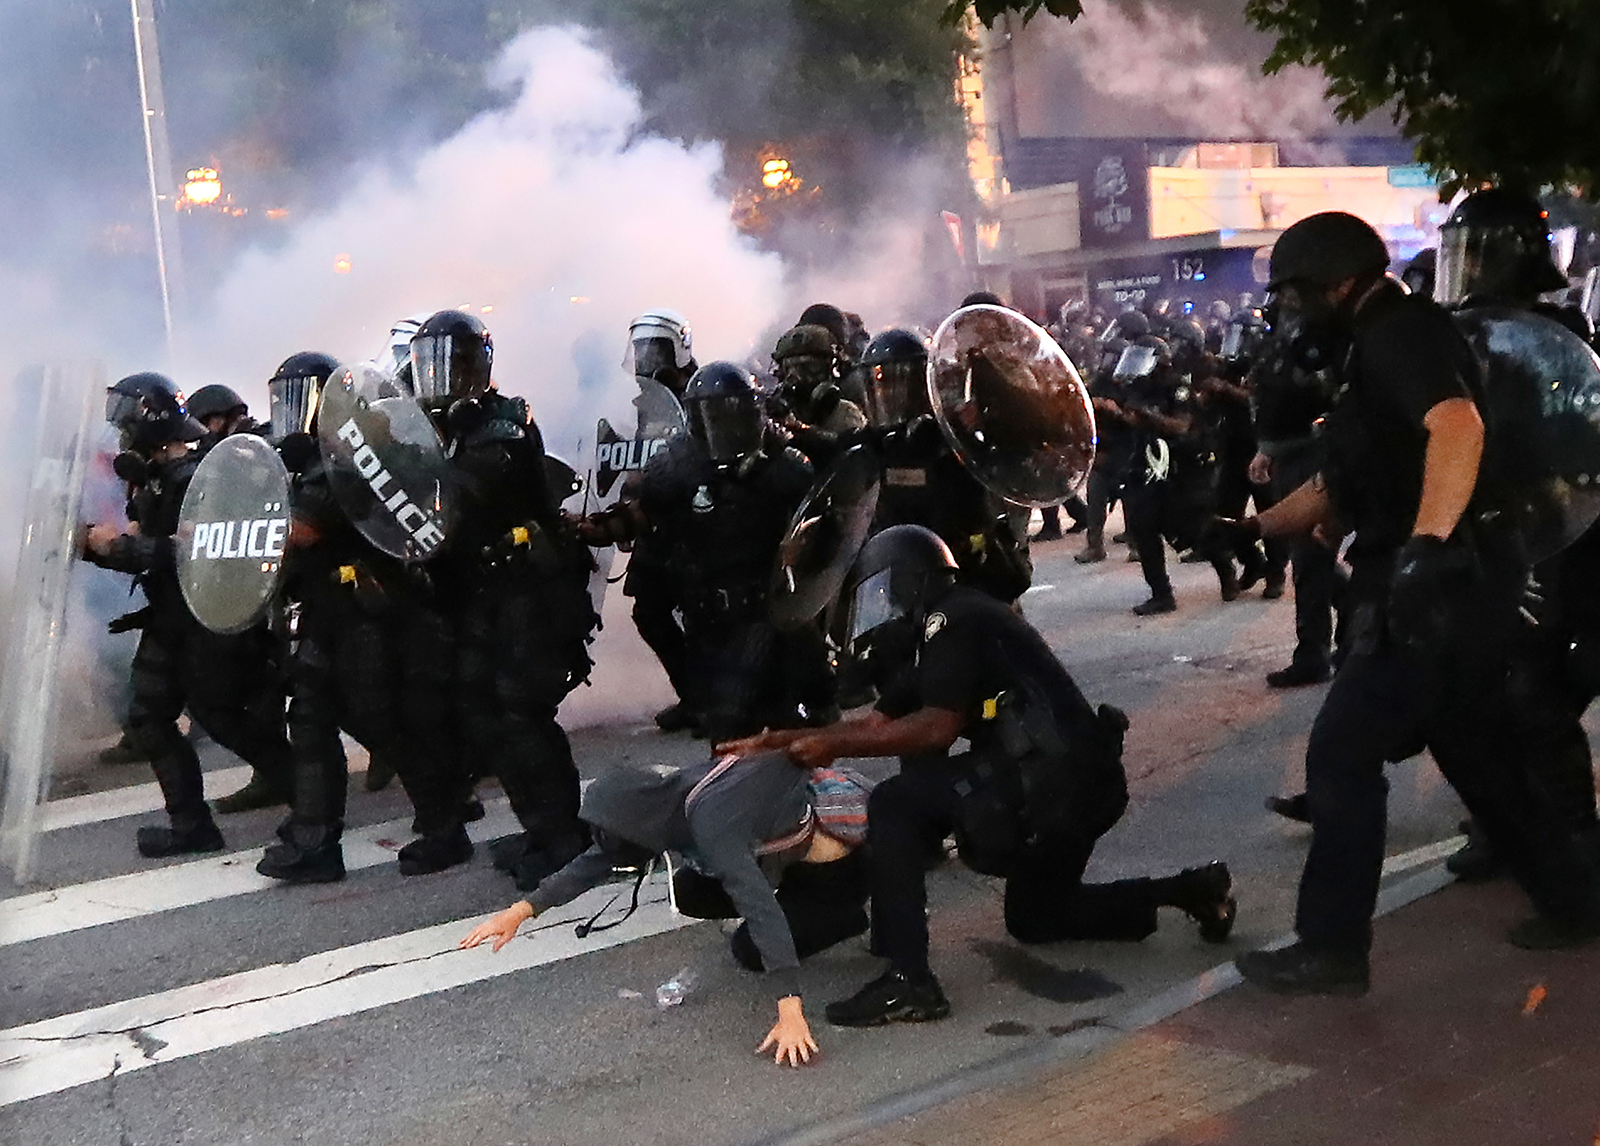 A protester is arrested in Atlanta, on May 31, after throwing tear gas back at police.